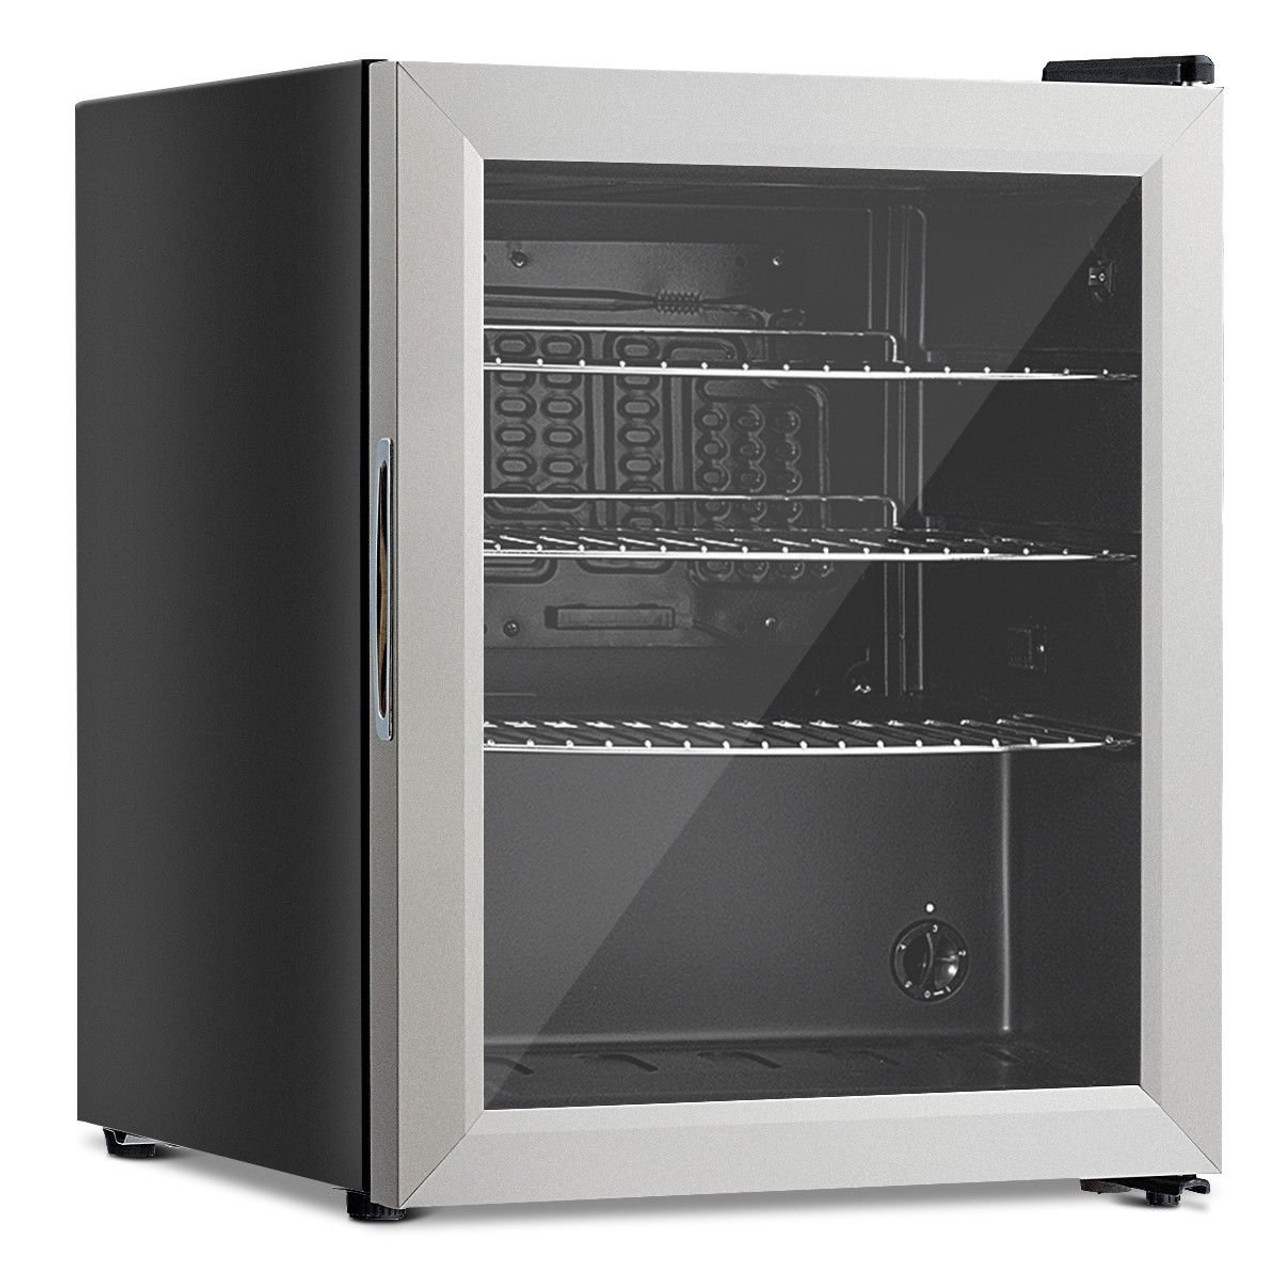 52 Can Beverage Refrigerator Cooler With Glass Door Stainless Steel Ep23752 By Cw